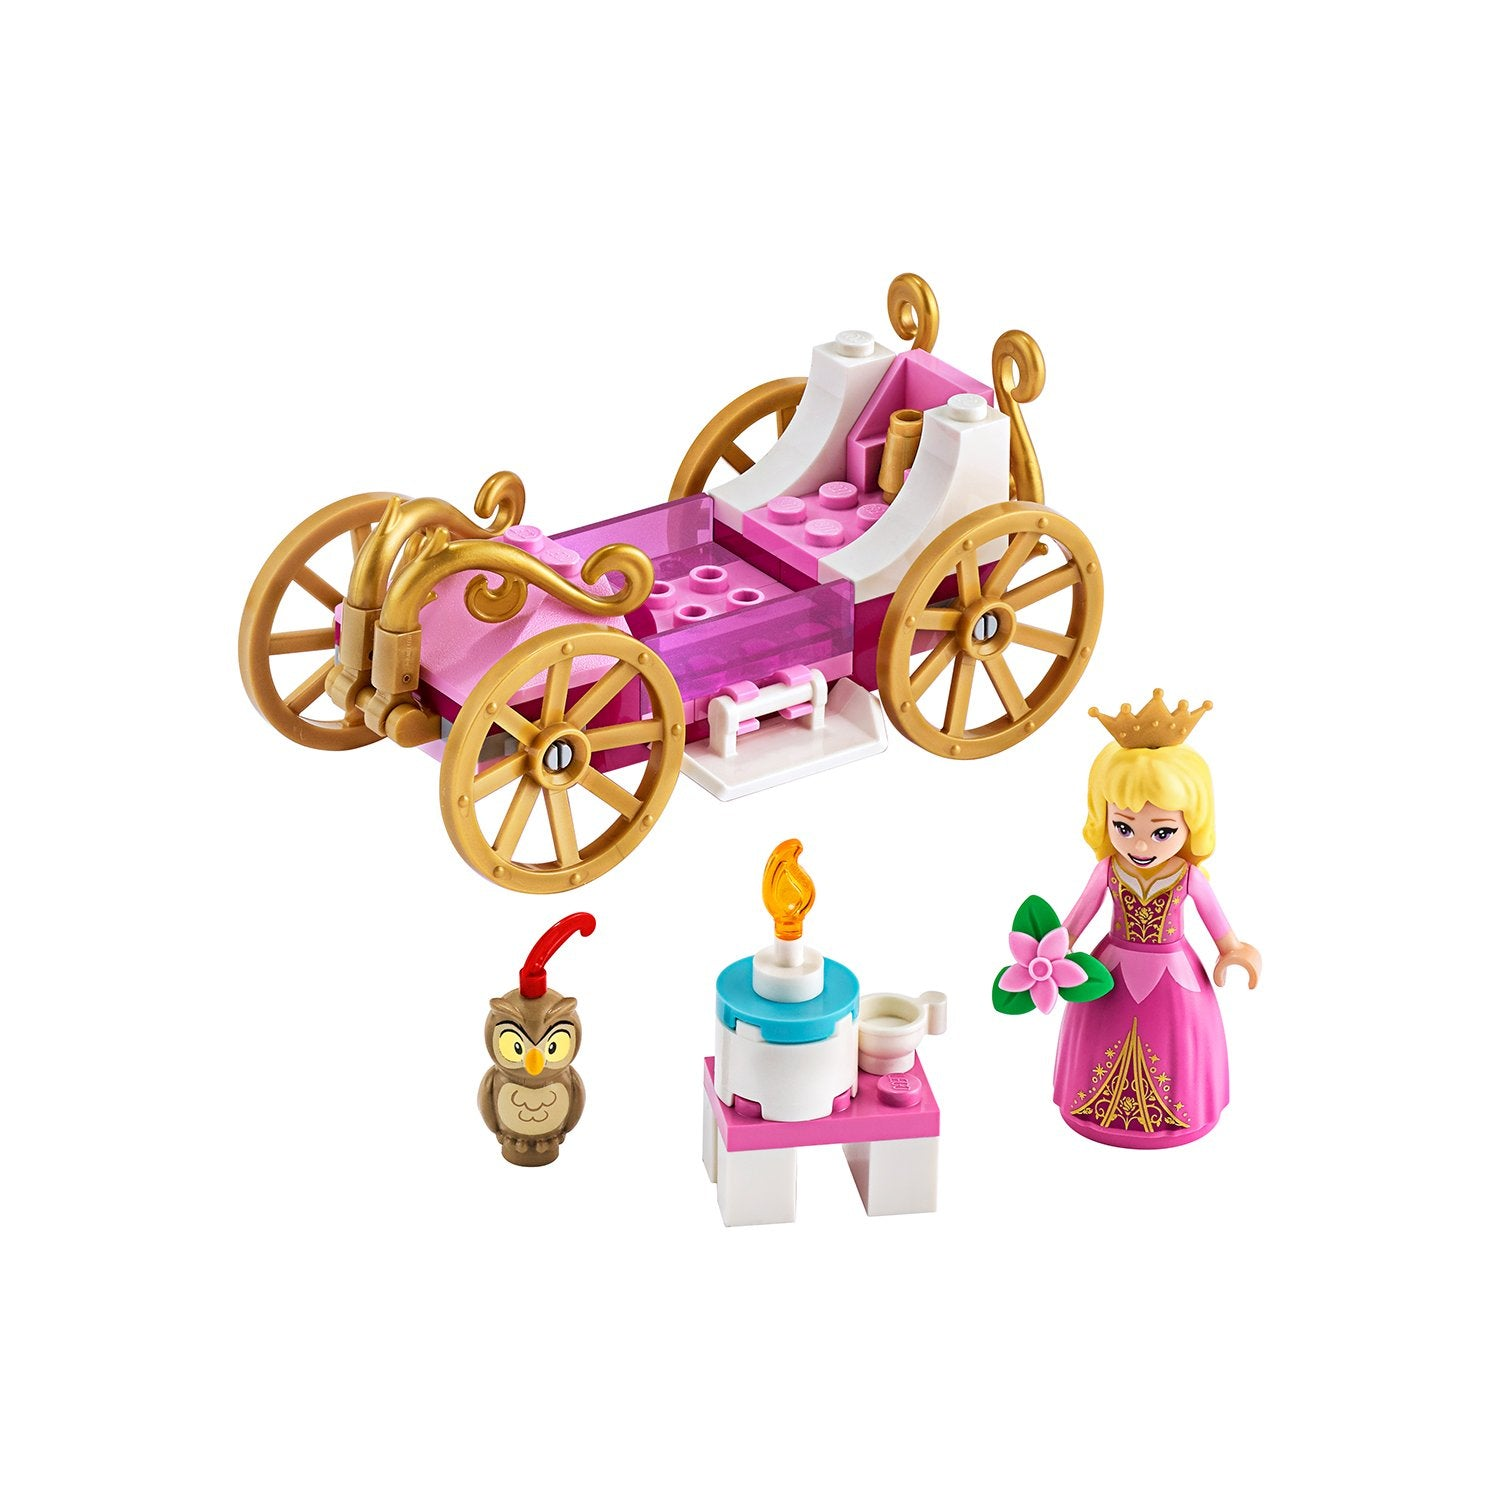 LEGO DISNEY PRINCESS Carruaje Real de Aurora